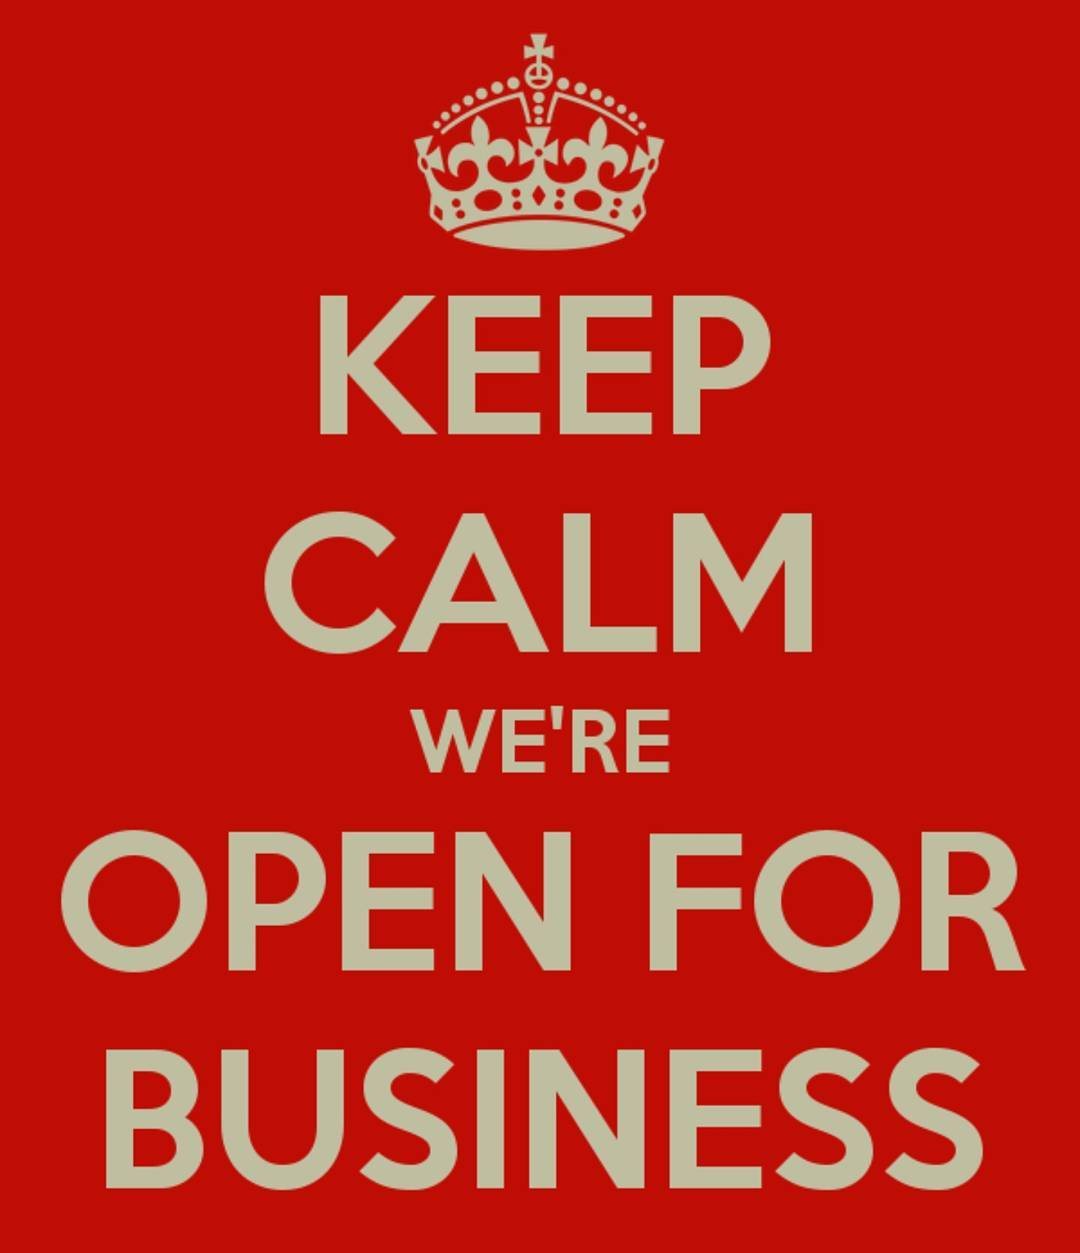 We are open today October 9th from 9am to 7pmhellip